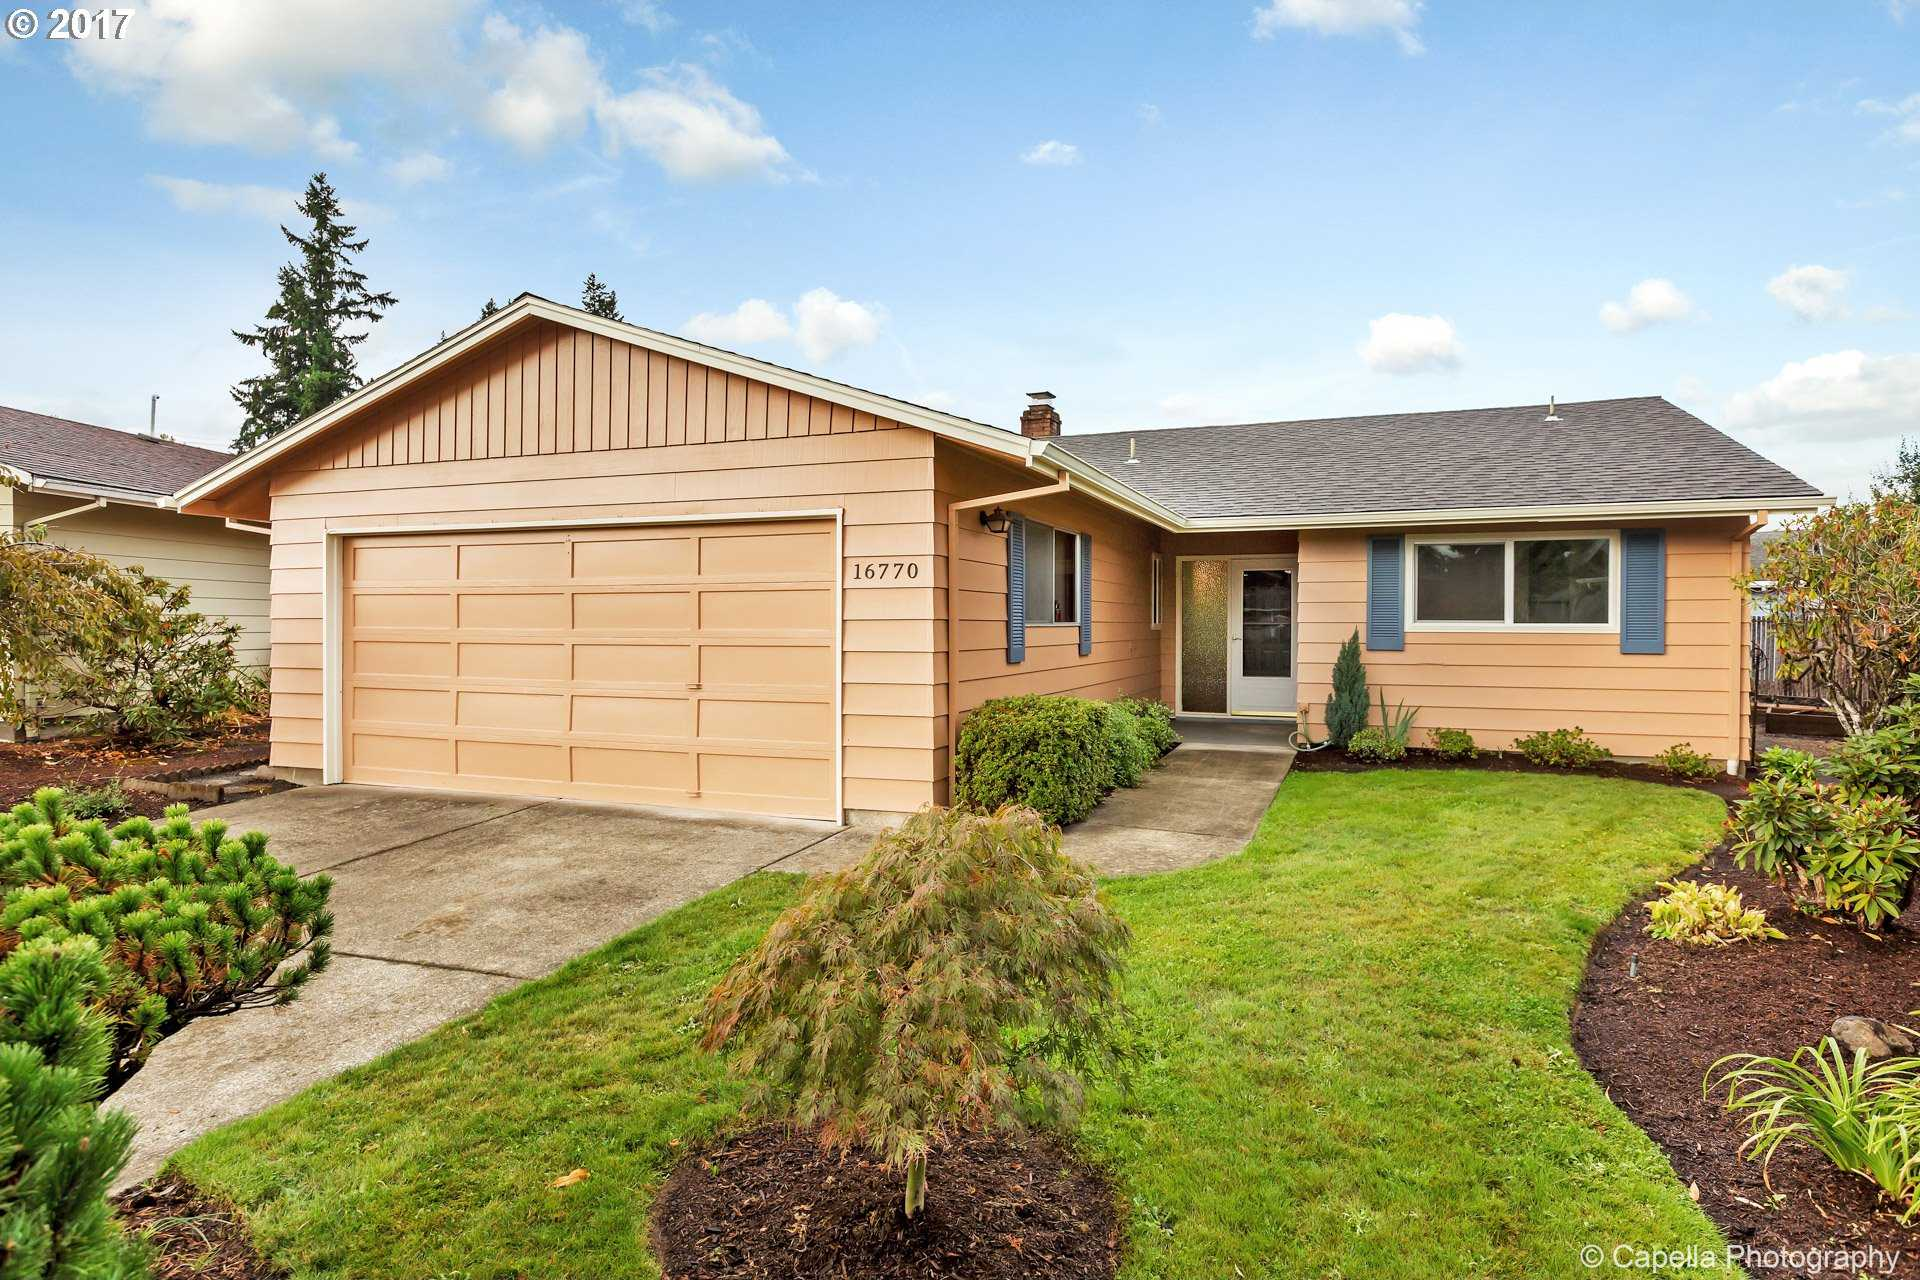 $325,000 - 2Br/2Ba -  for Sale in King City, King City